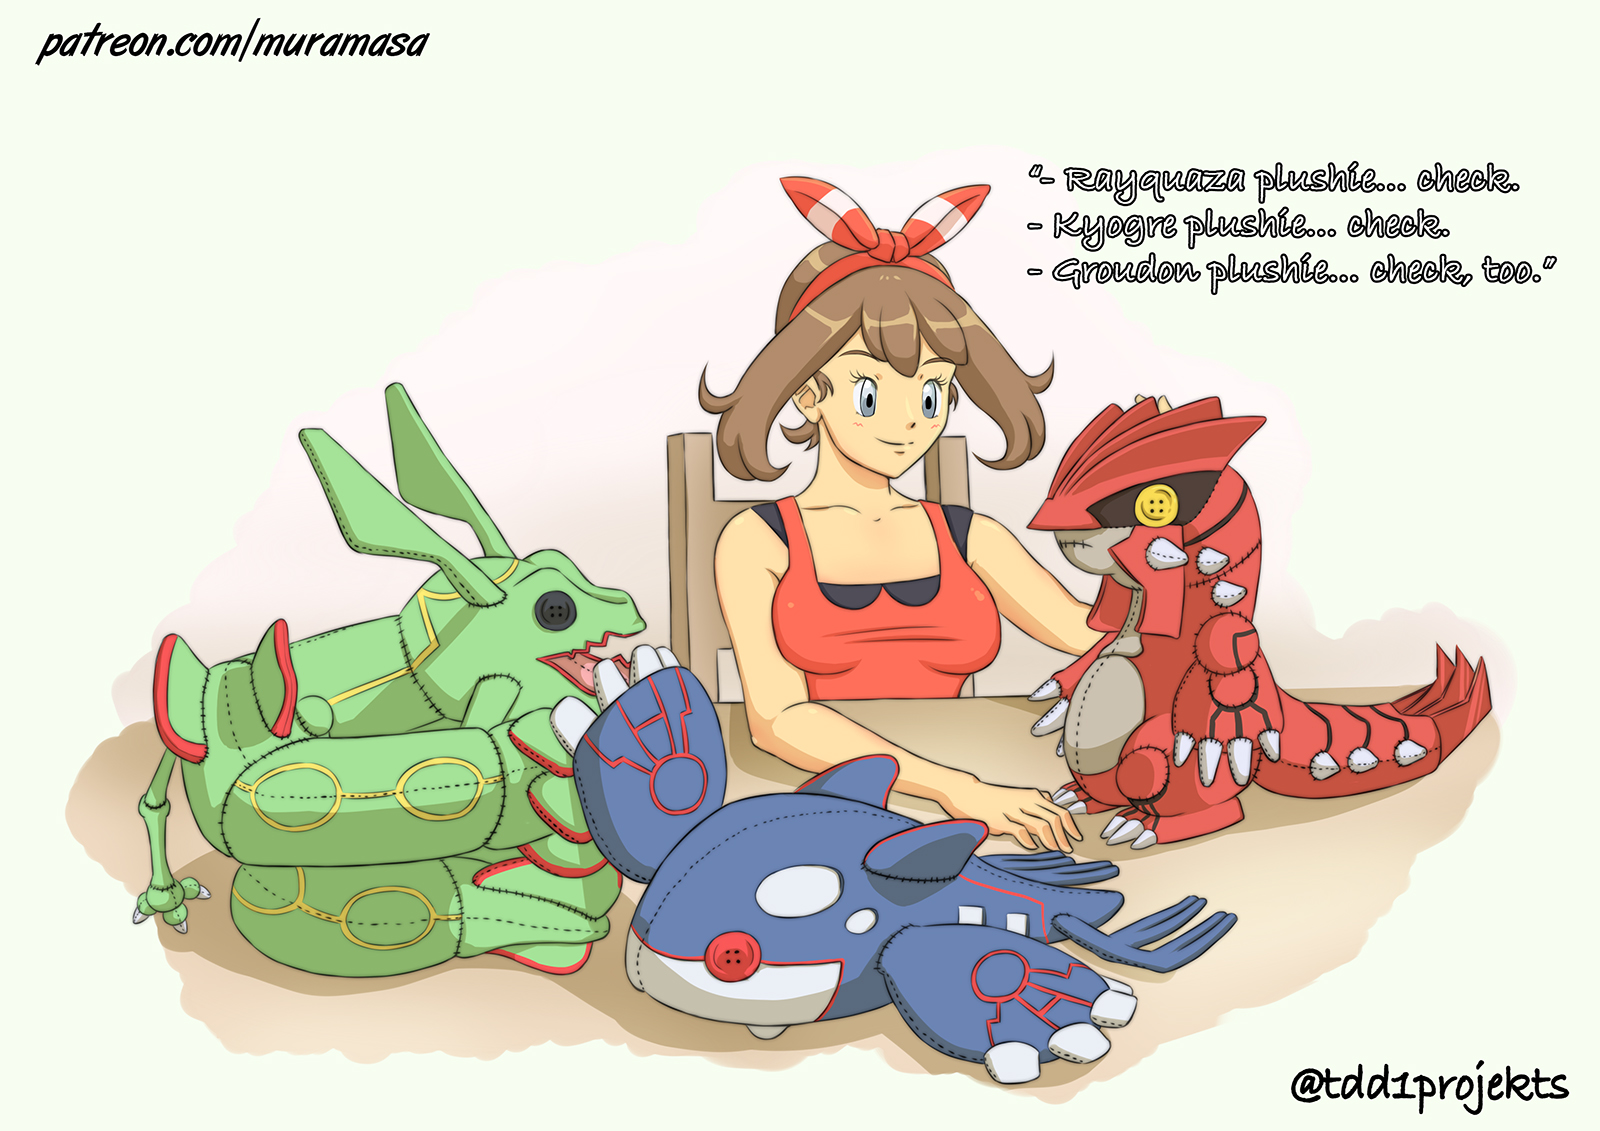 Now that Pokemon ORAS is coming...